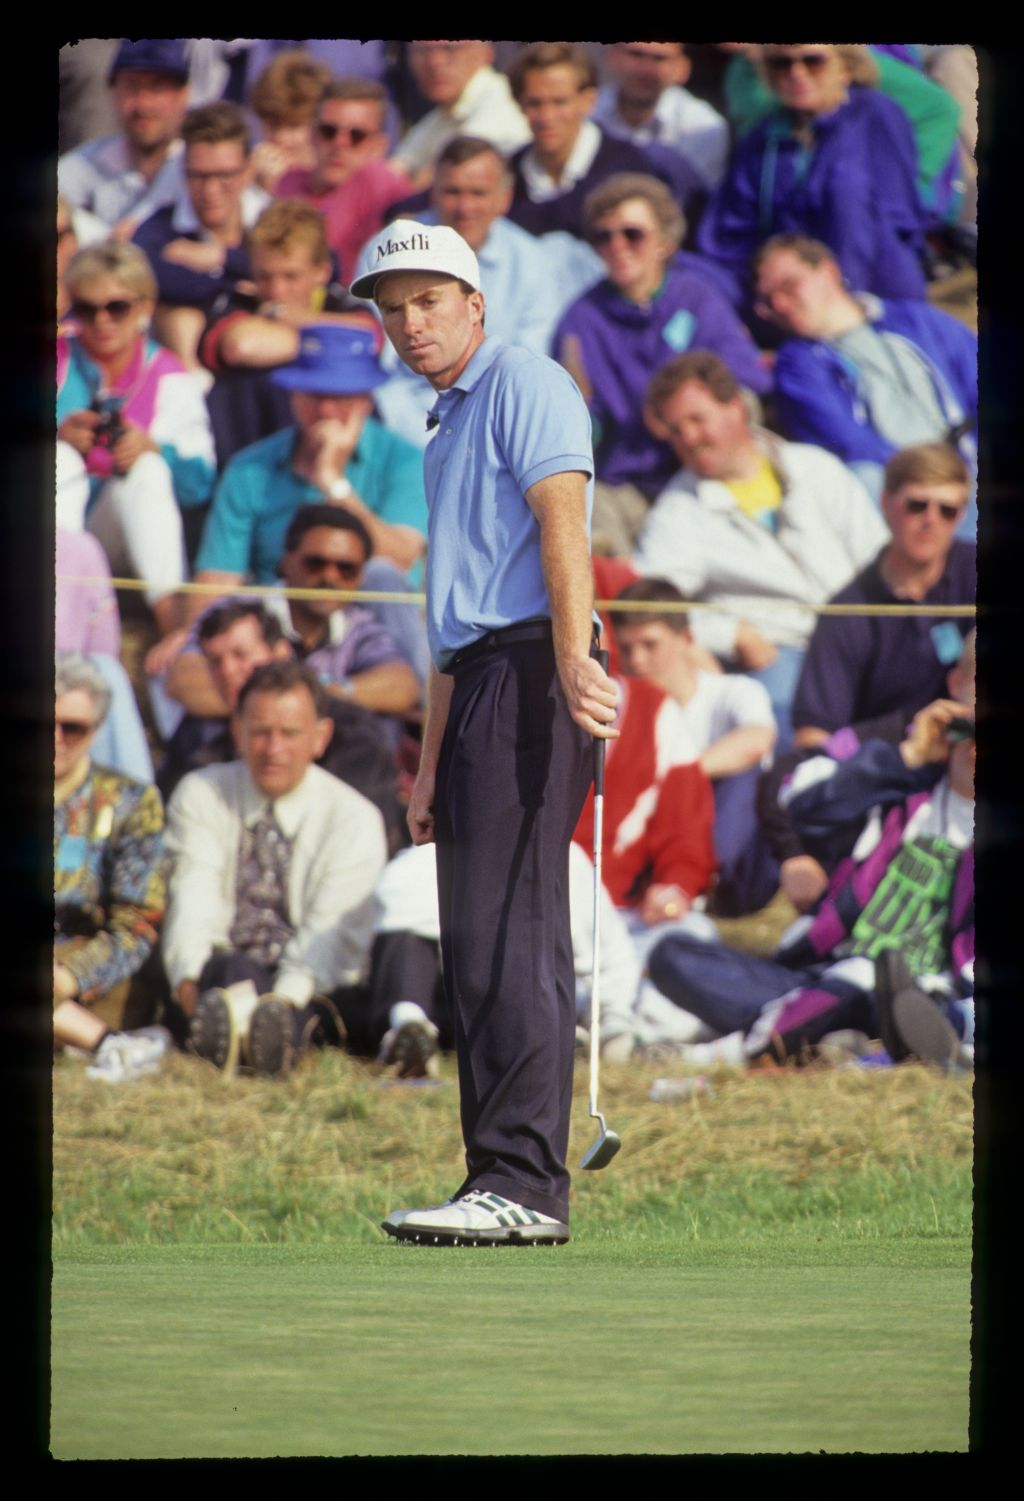 David Gilford putting from the fringe during the 1991 Open Championship